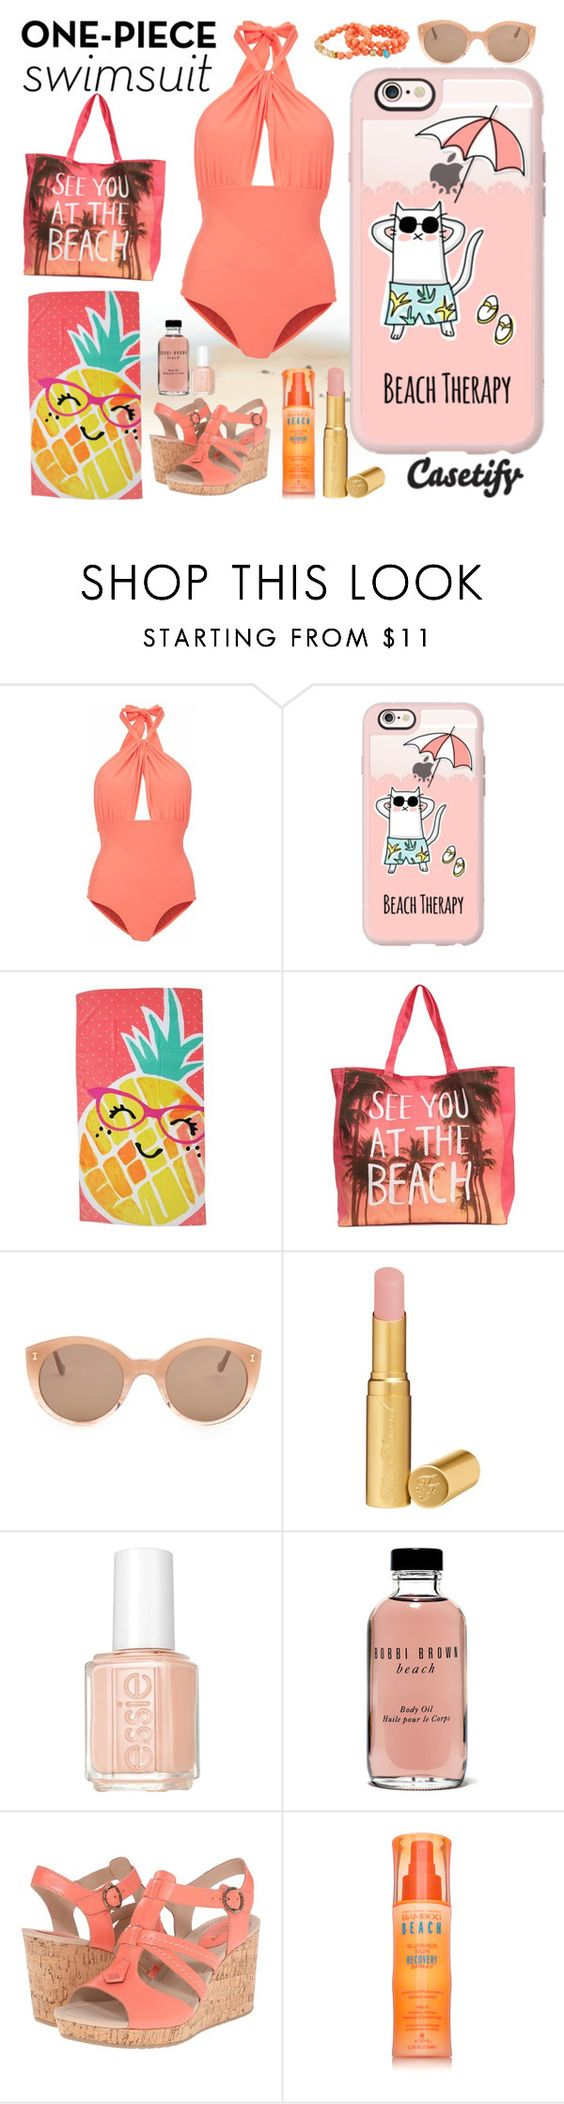 """""""Feeling BEACHY"""" by casetify ❤ liked on Polyvore featuring Lilliput & Felix, Casetify, Evergreen, Illesteva, Too Faced Cosmetics, Essie, Bobbi Brown Cosmetics, Sperry, Alterna and Dee Berkley"""